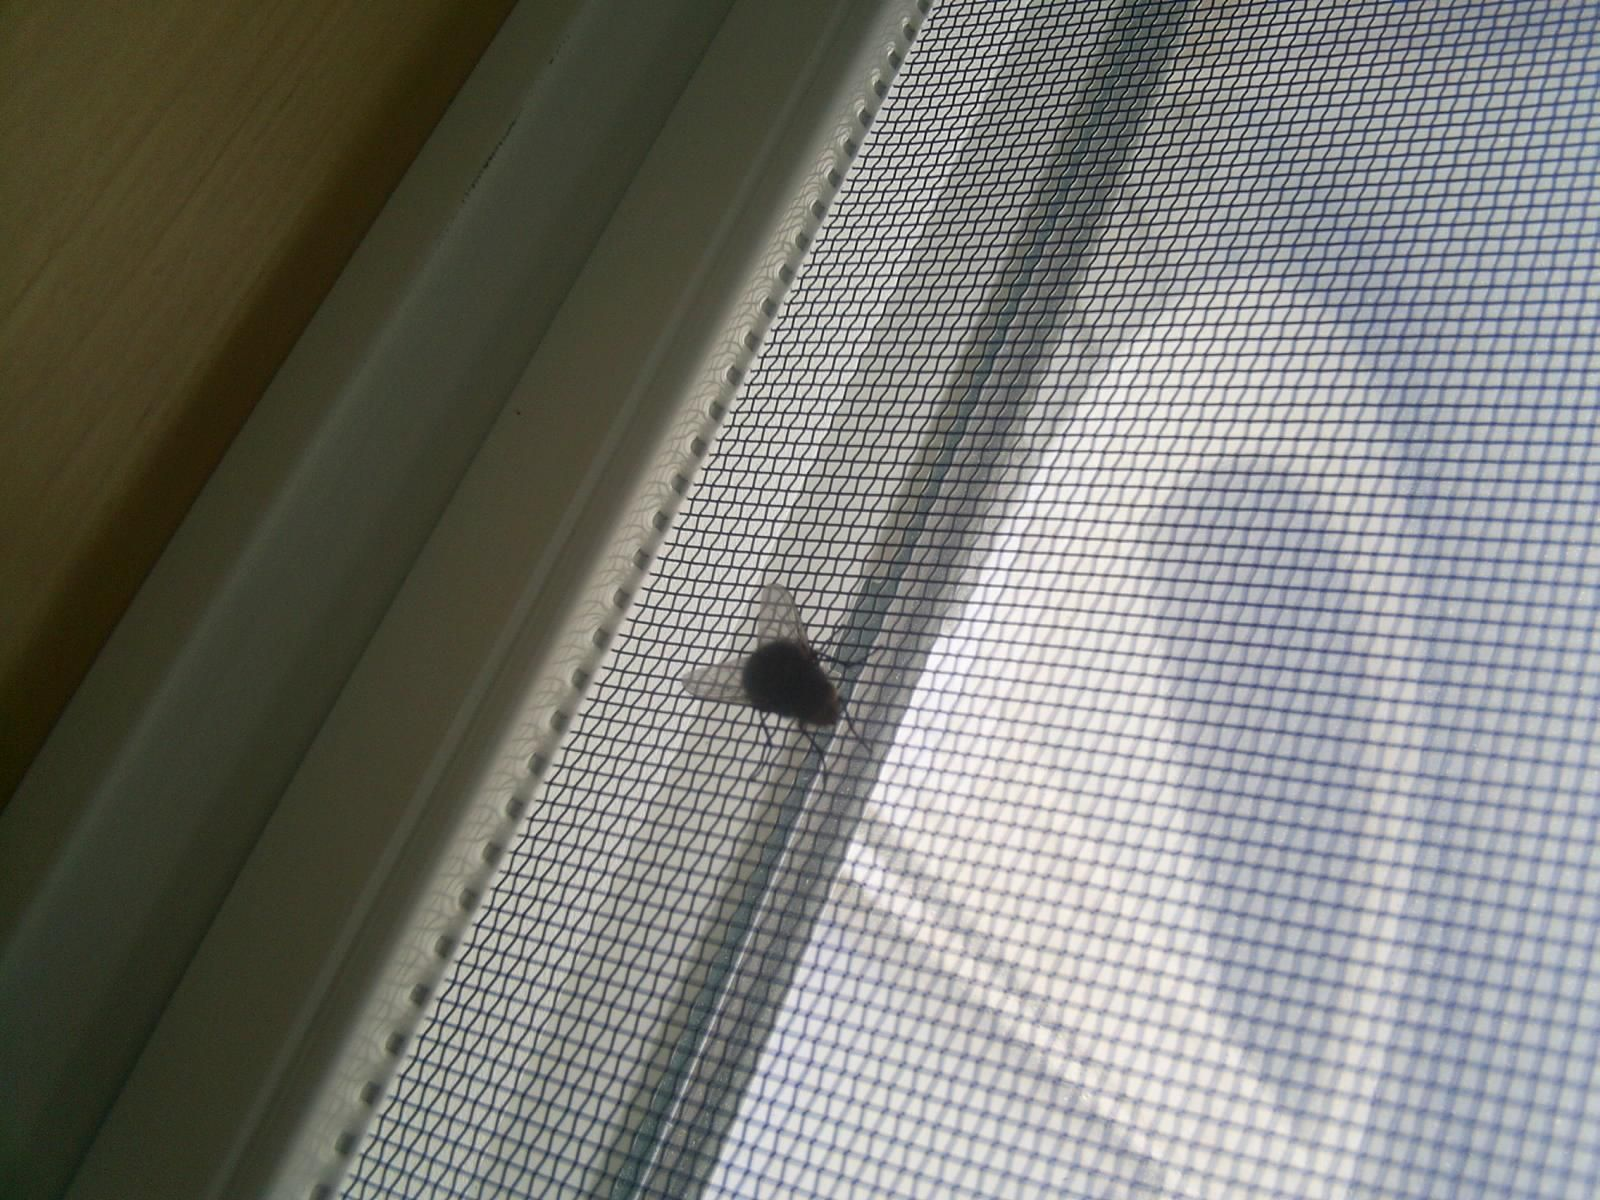 common-house-fly-on-screen-of-window.jpg